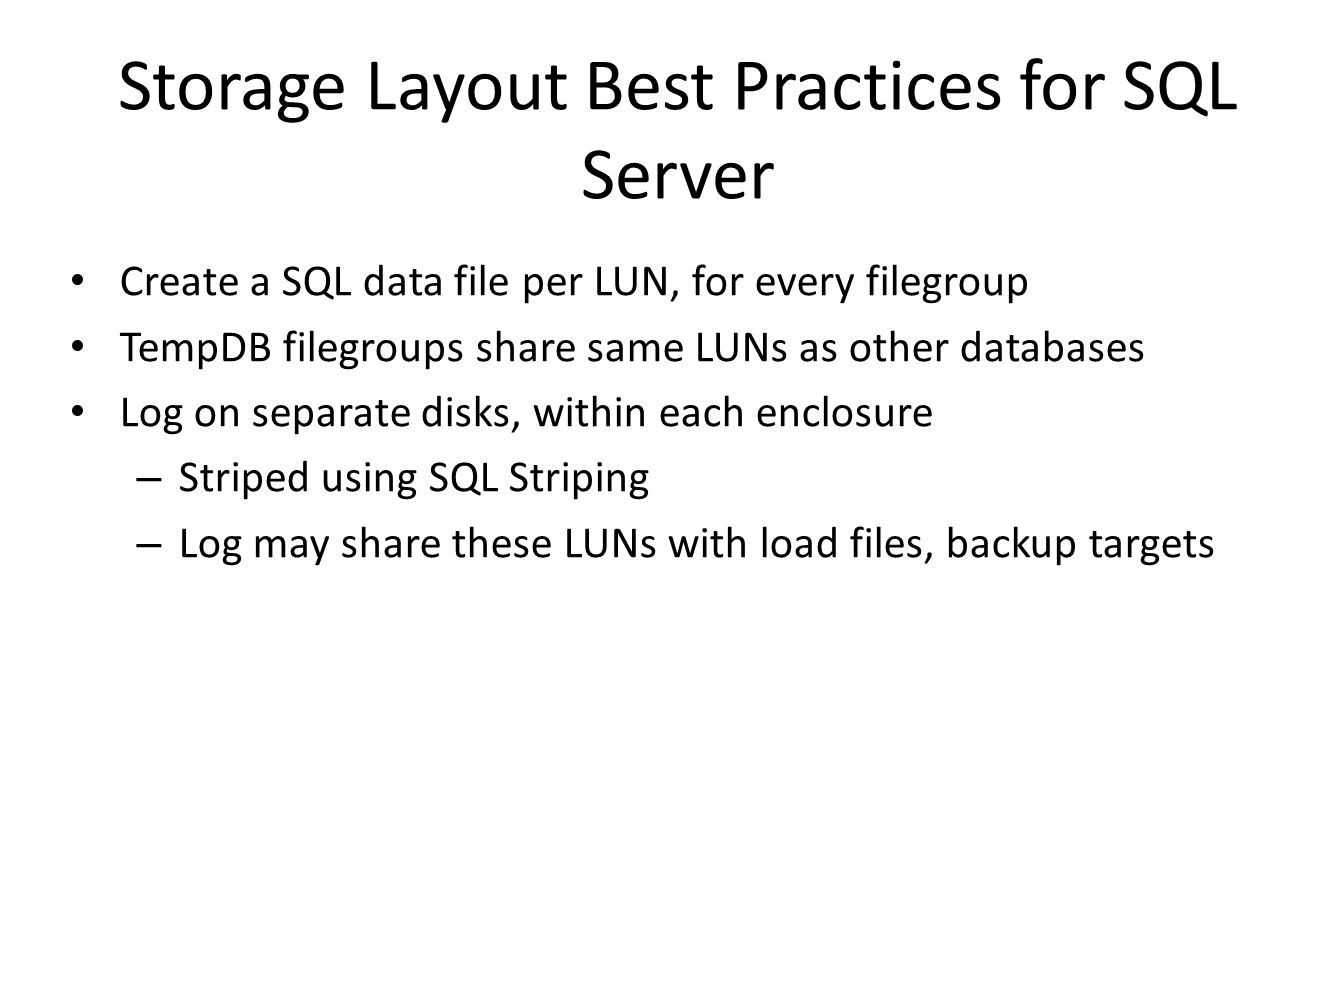 Storage Layout Best Practices for SQL Server Create a SQL data file per LUN, for every filegroup TempDB filegroups share same LUNs as other databases Log on separate disks, within each enclosure – Striped using SQL Striping – Log may share these LUNs with load files, backup targets